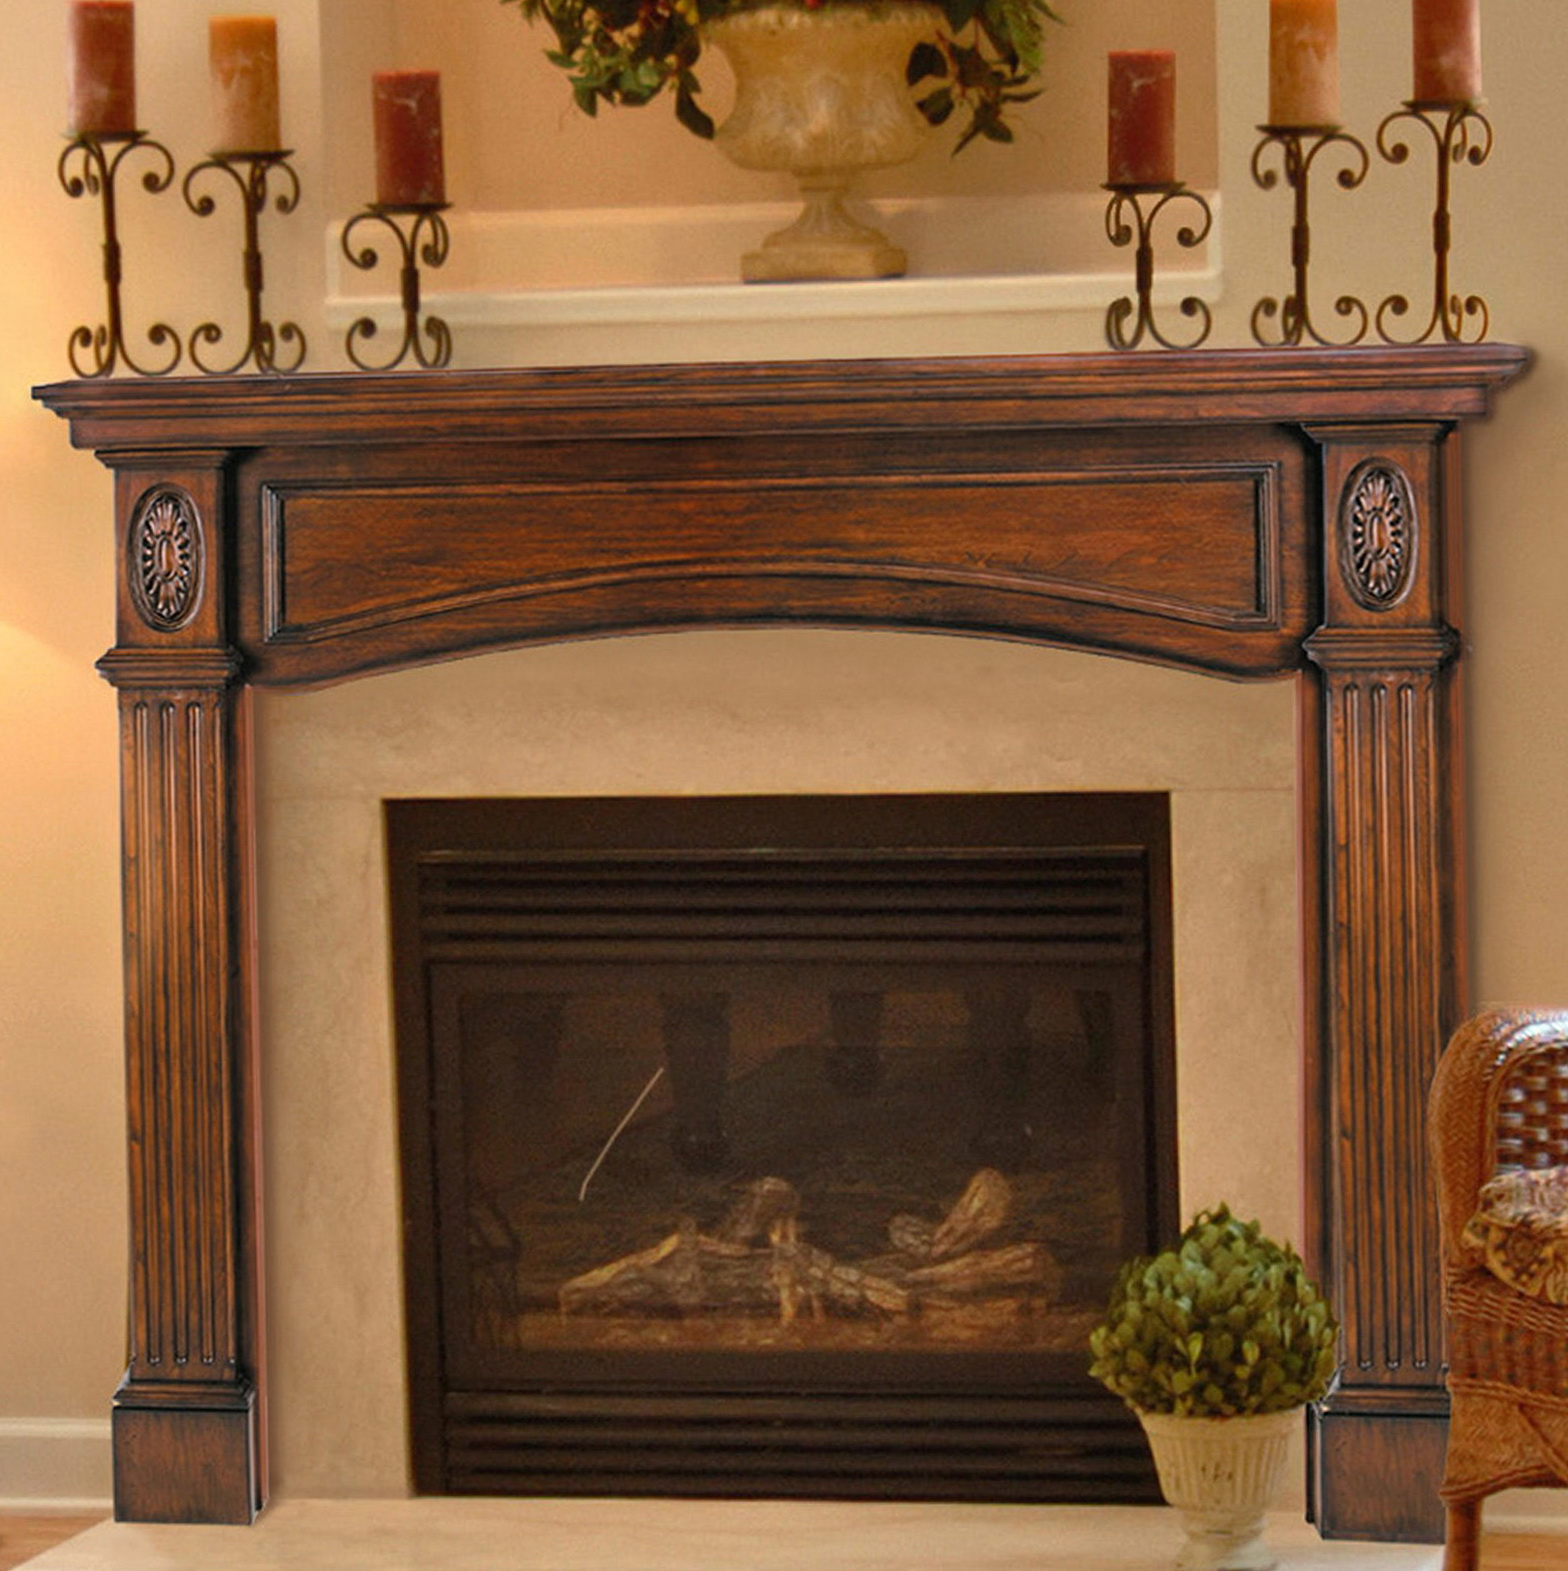 Lowes Fireplace Mantel | Home Depot Fireplace Mantels Kits | Unfinished Fireplace Mantel